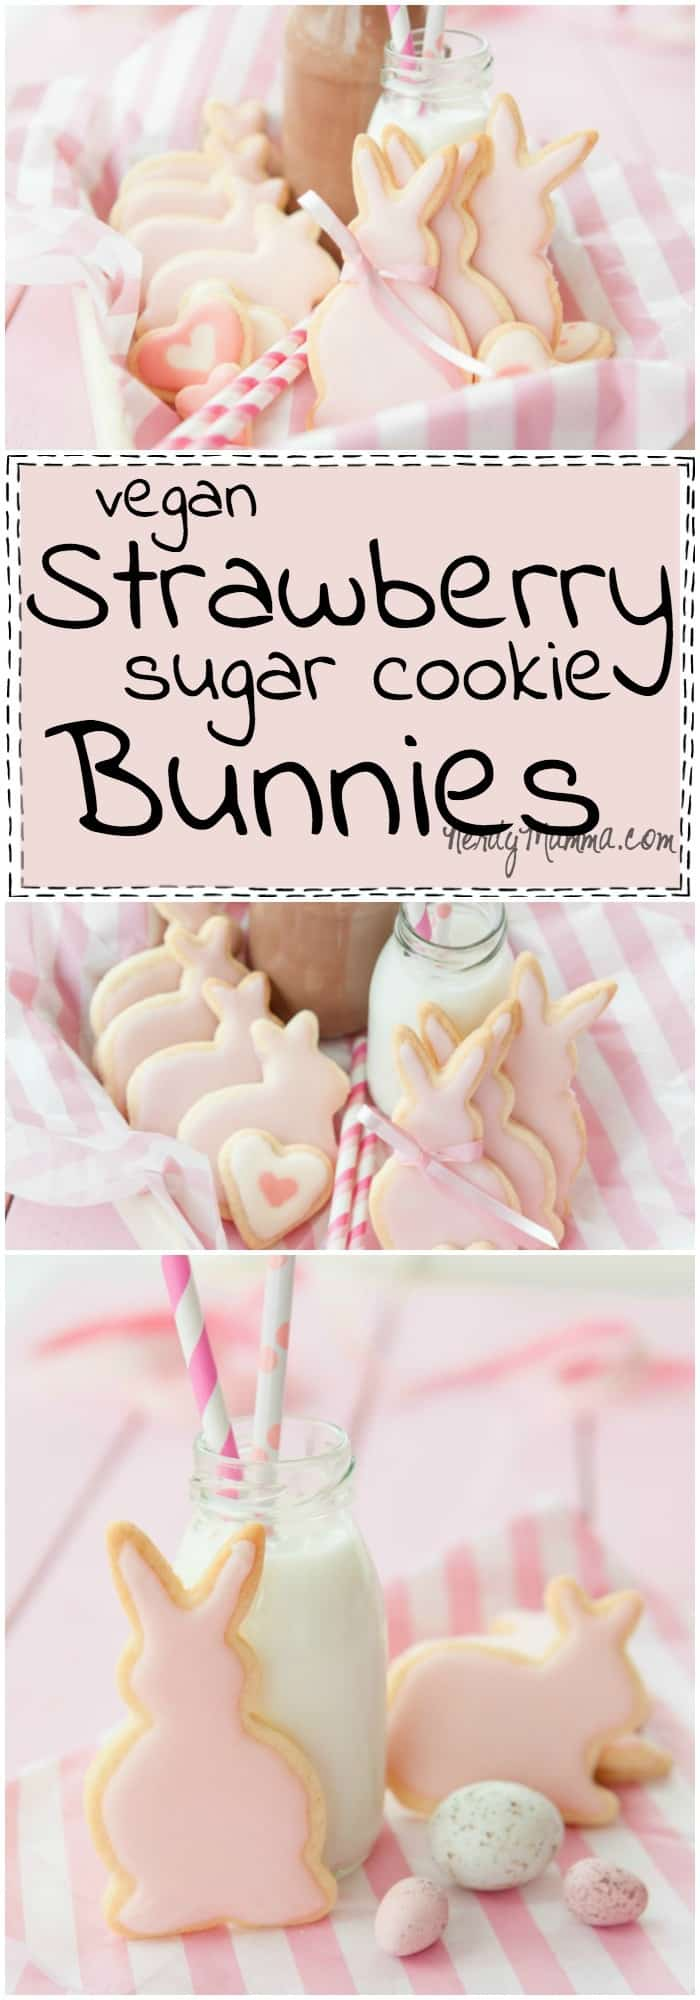 I love this recipe for strawberry sugar cookies. Not only are they shaped like bunnies, which is cute, but they sound awesome, too...